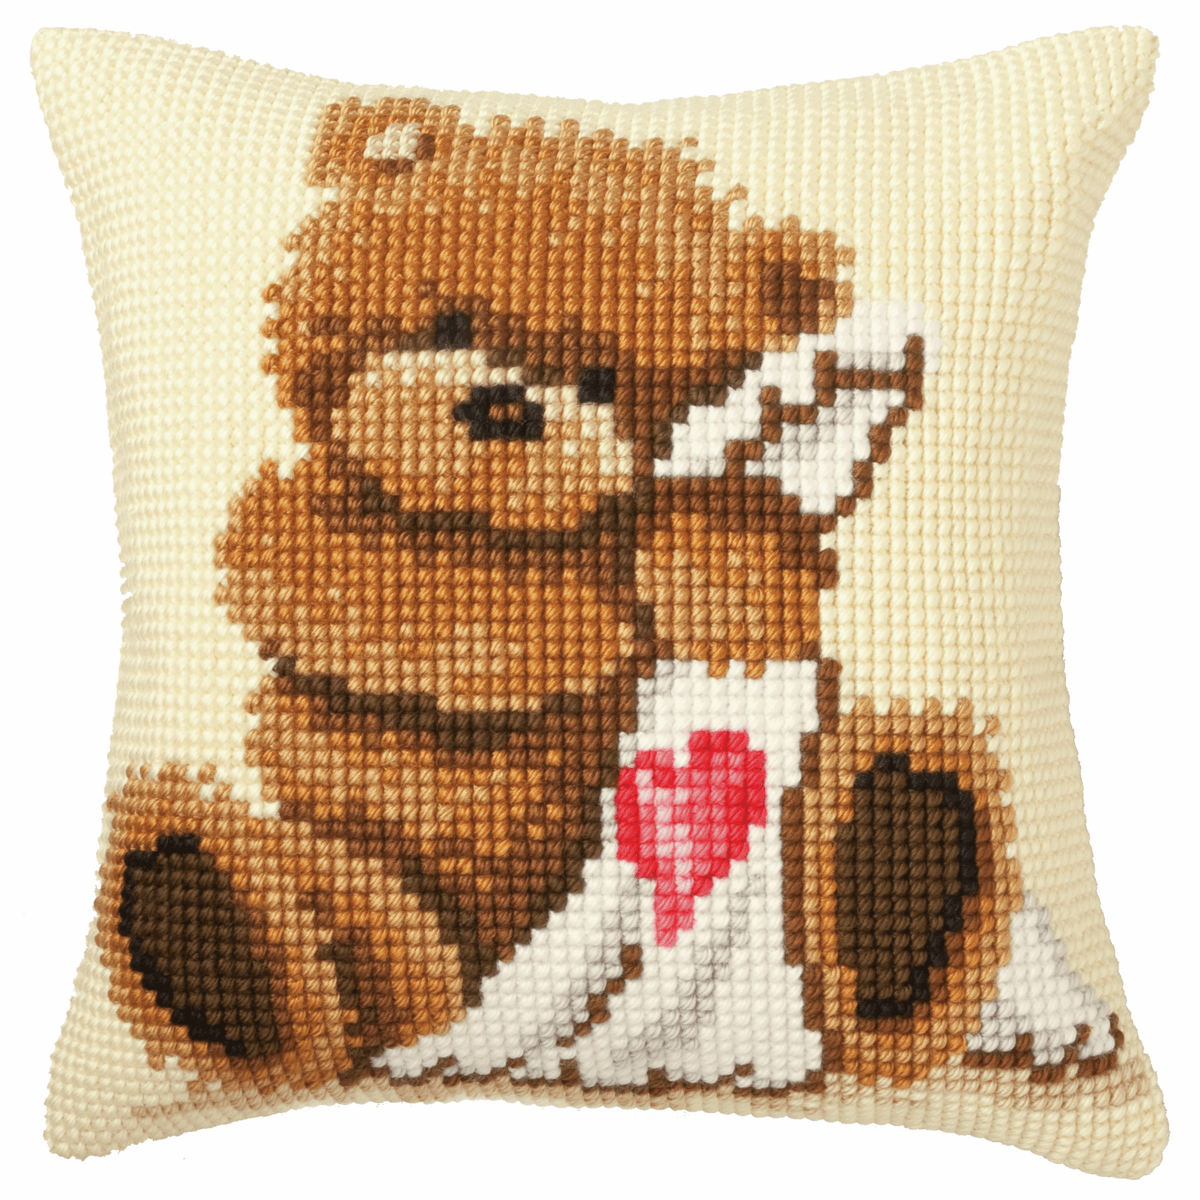 Picture of Cross Stitch Kit: Cushion: Popcorn with Blanket